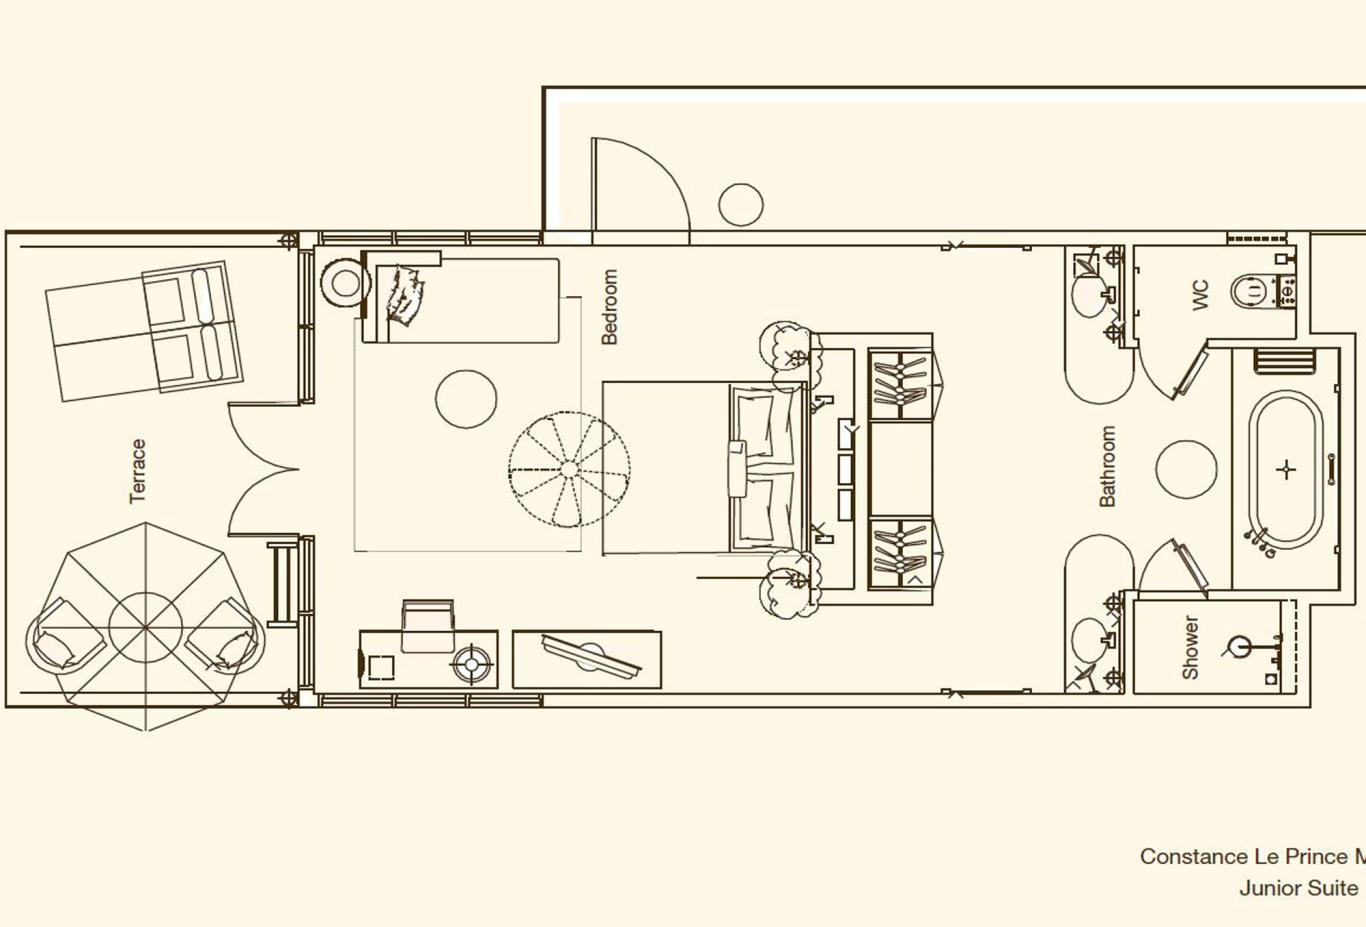 Junior Suites Floorplan